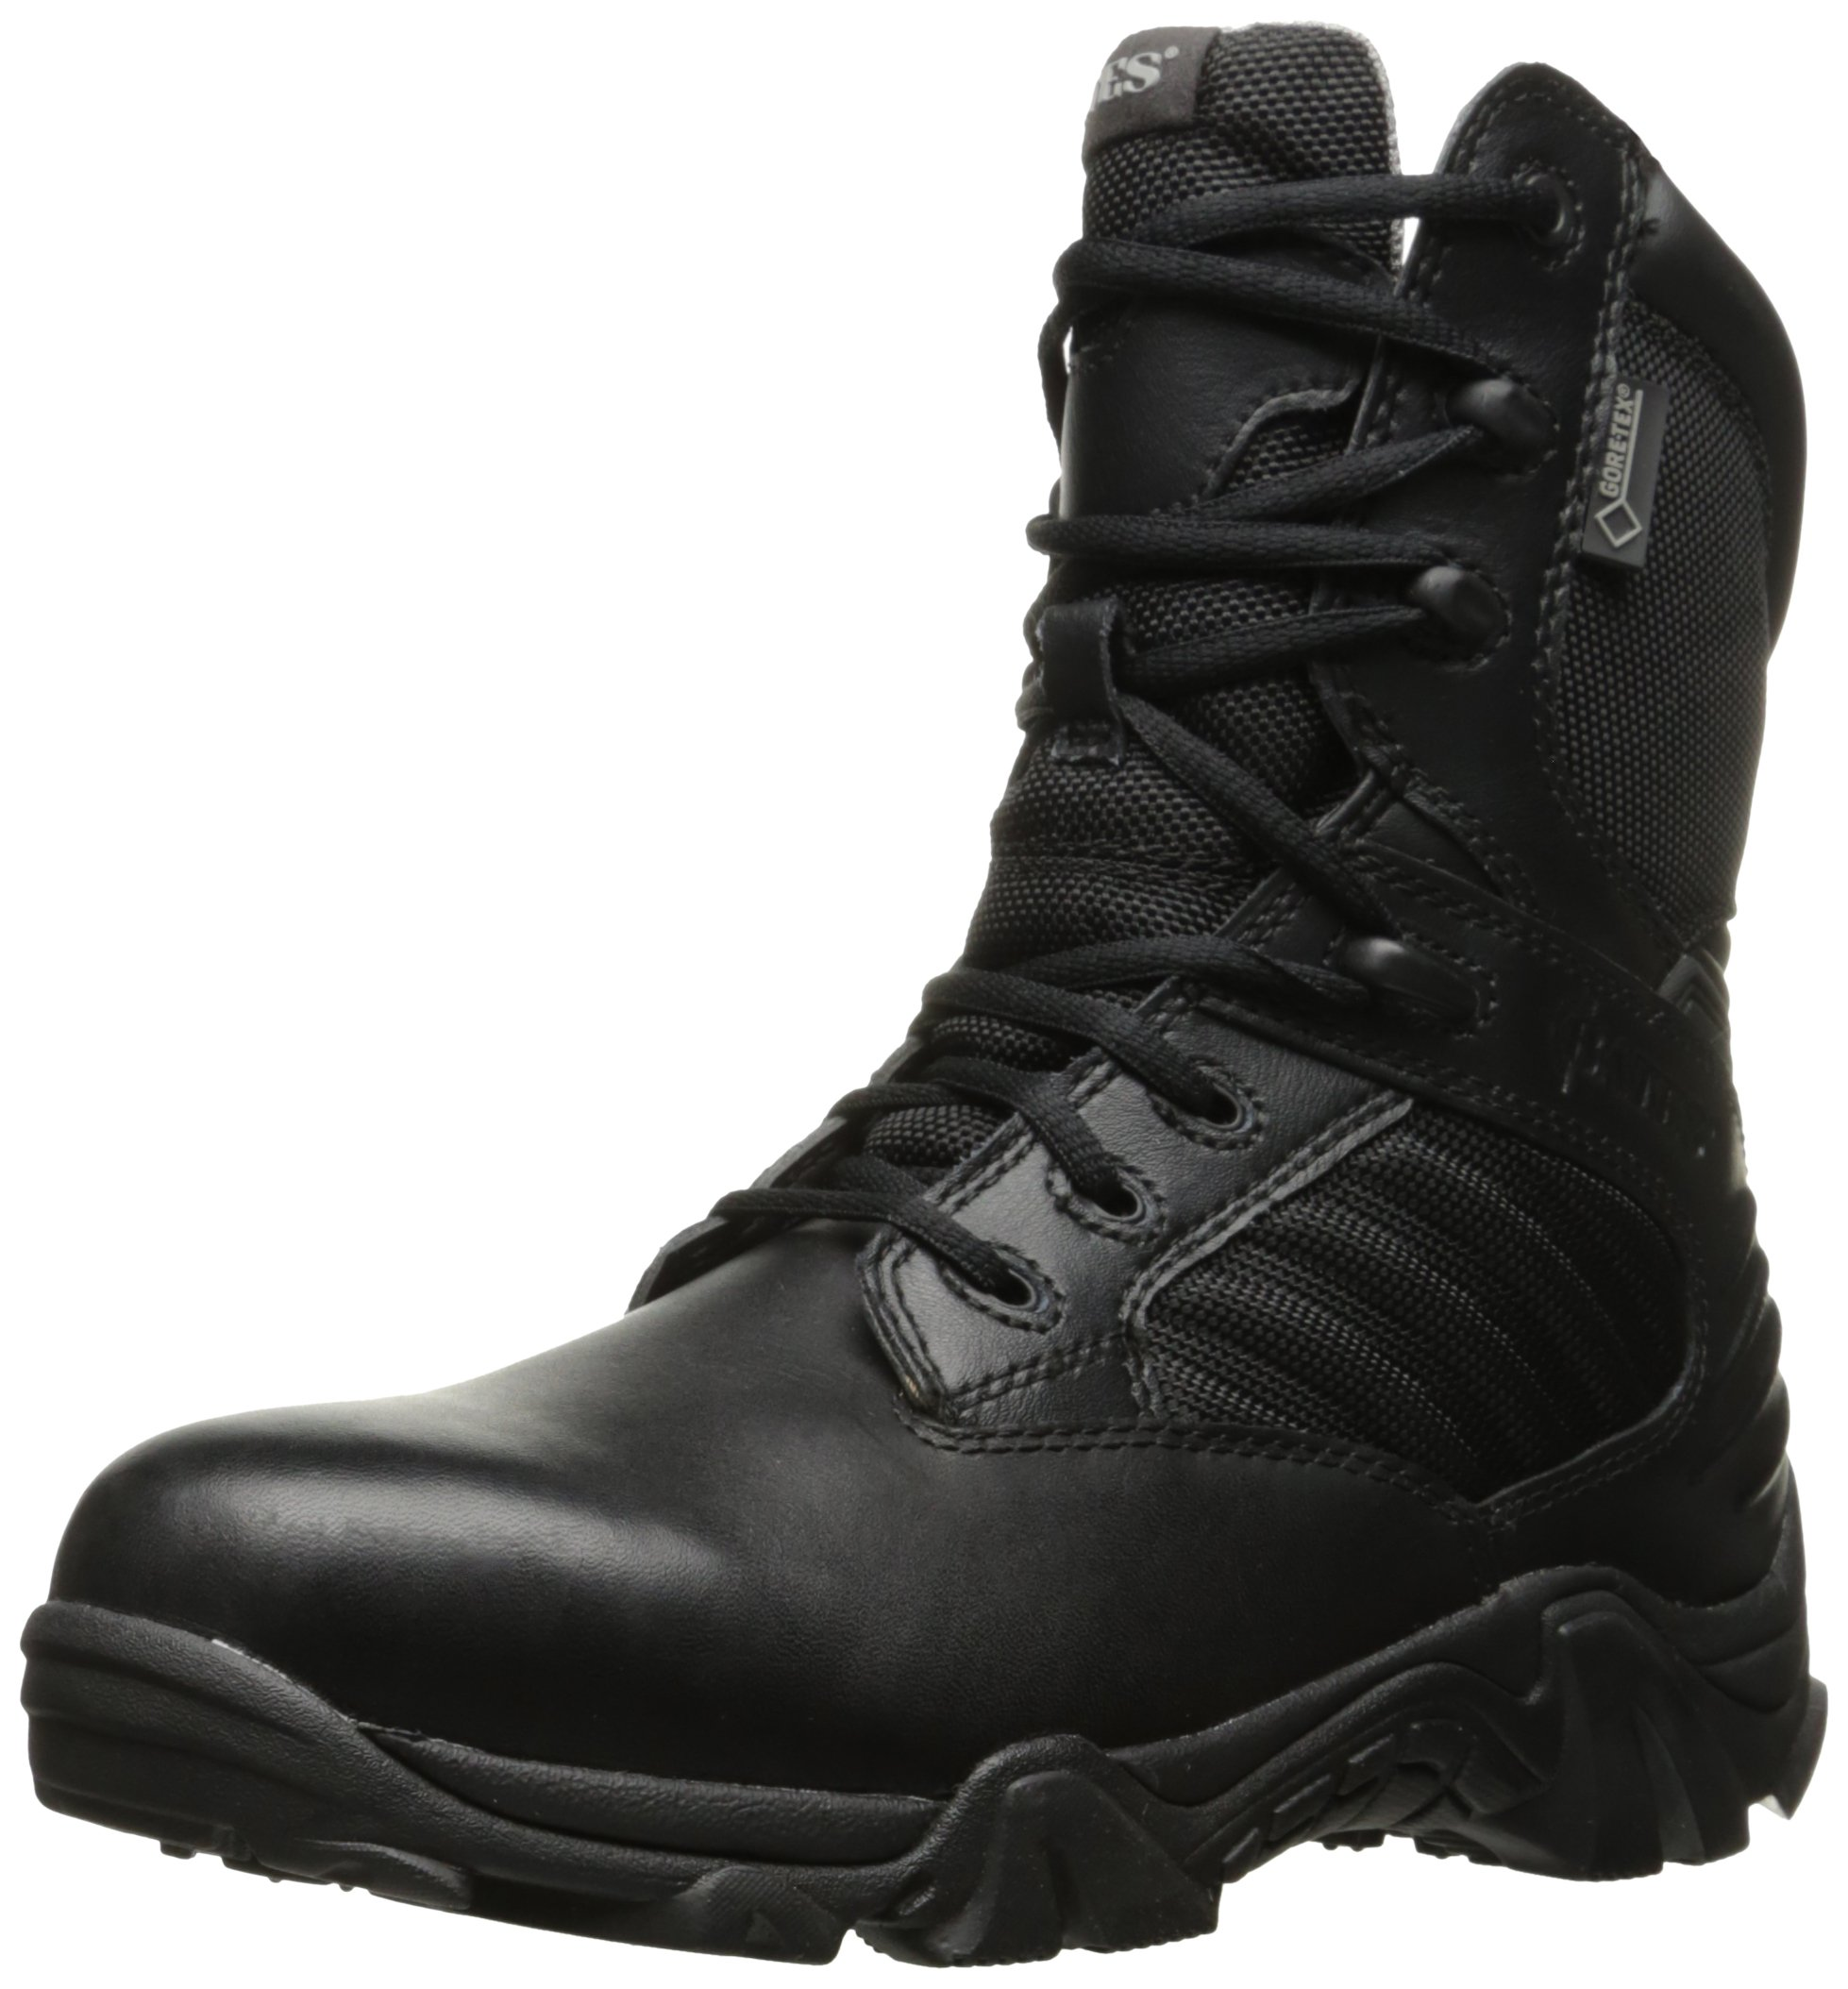 Bates Women's GX-8 Gore-Tex Insulated Side Zip Fire and Safety Shoe, Black, 9 M US by Bates (Image #1)